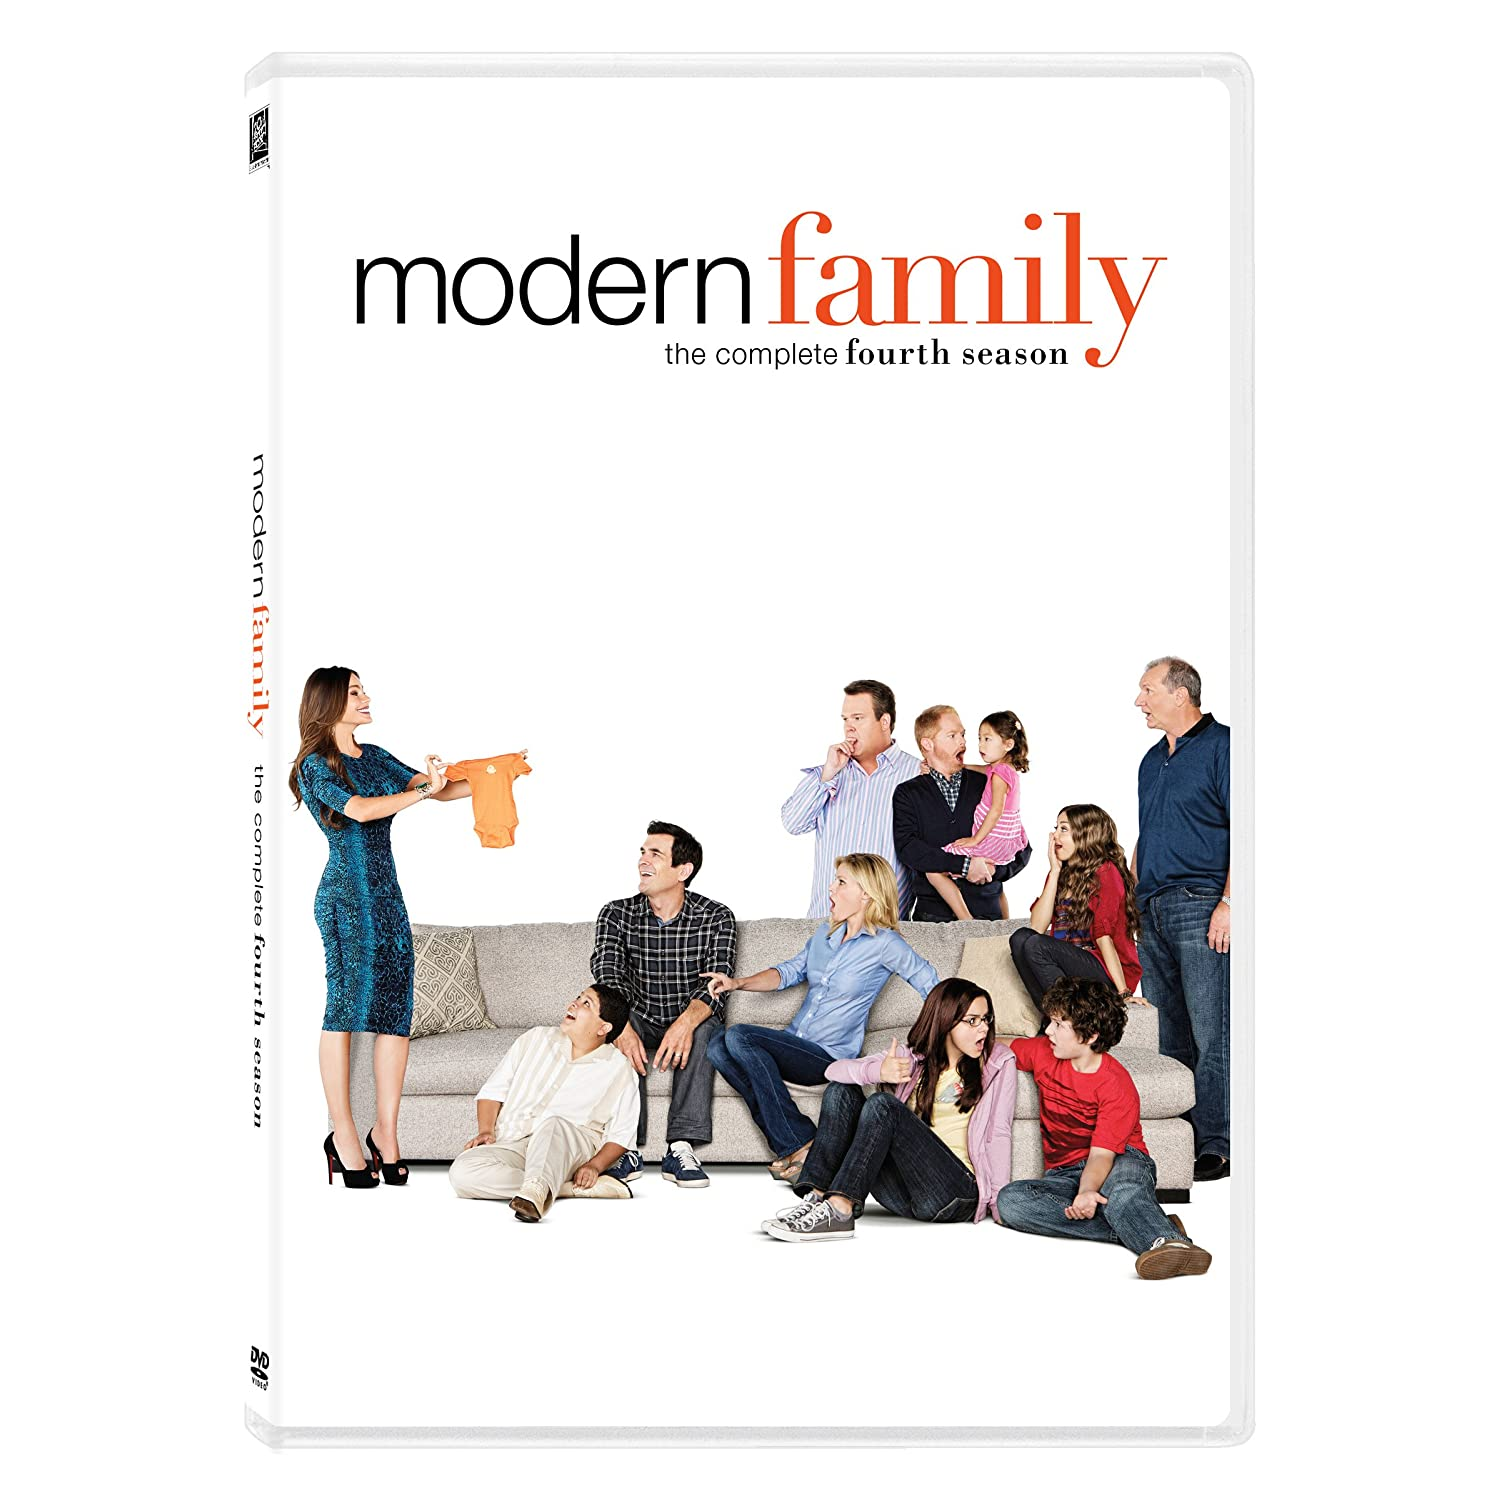 modern family the complete fourth season out september 24th on dvd season 5